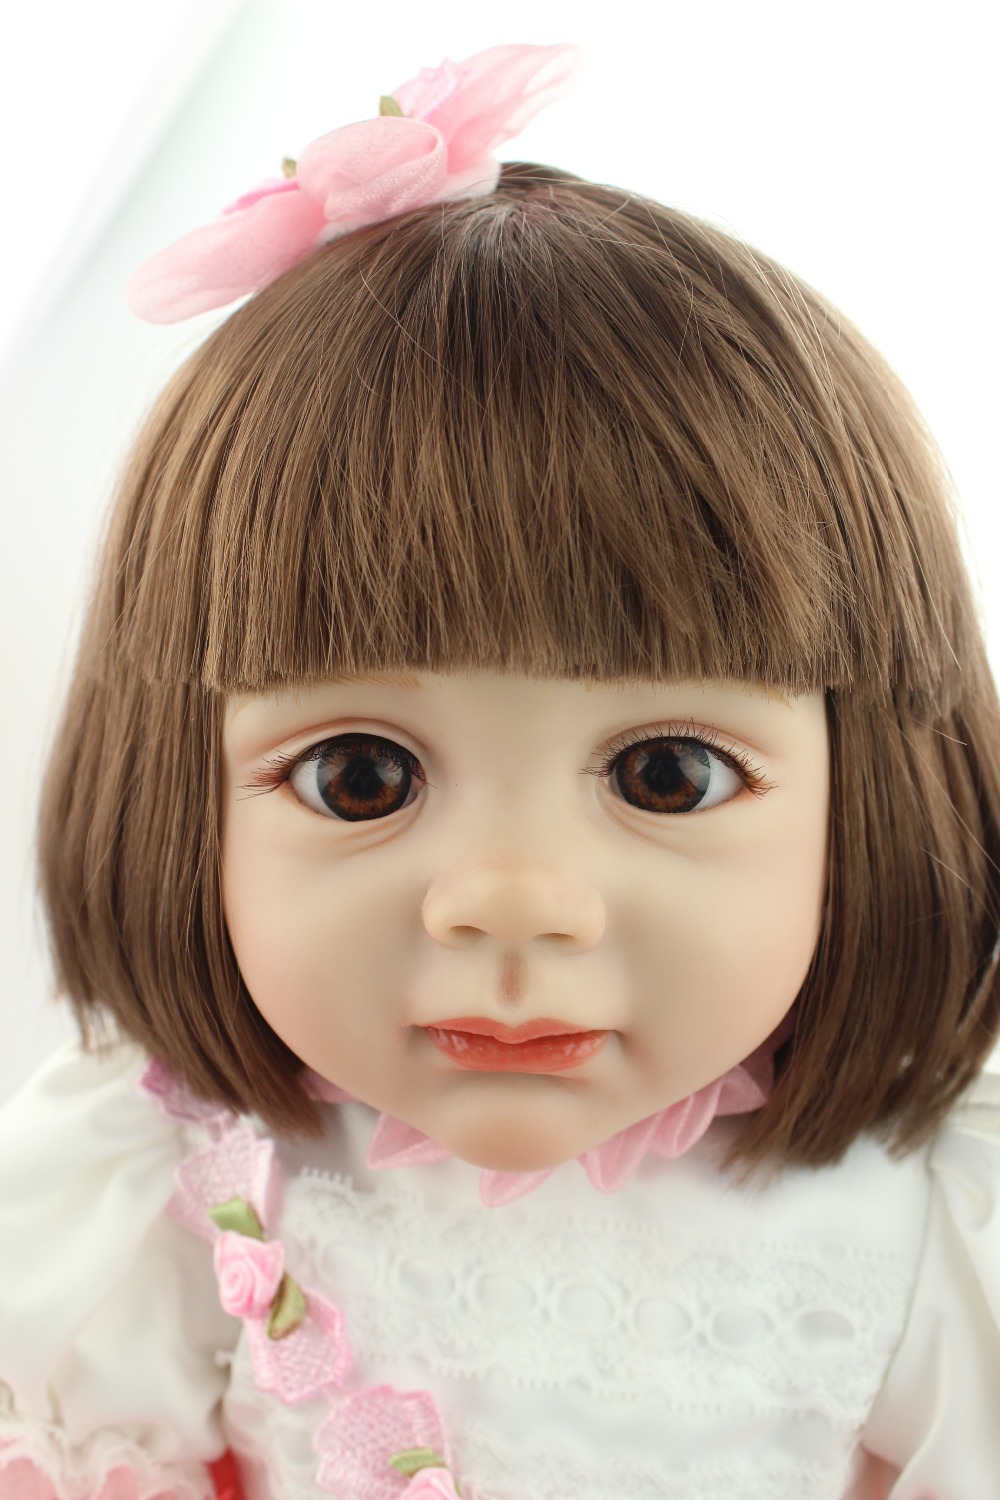 2015 new design 24inch Reborn Toddler baby doll rooted human hair  Fridolin lifelike sweet girl real gentle touch new arrived 55 60cm silicone reborn baby dolls fridolin sweet girl real gentle touch rooted human hair with pink dress newyear